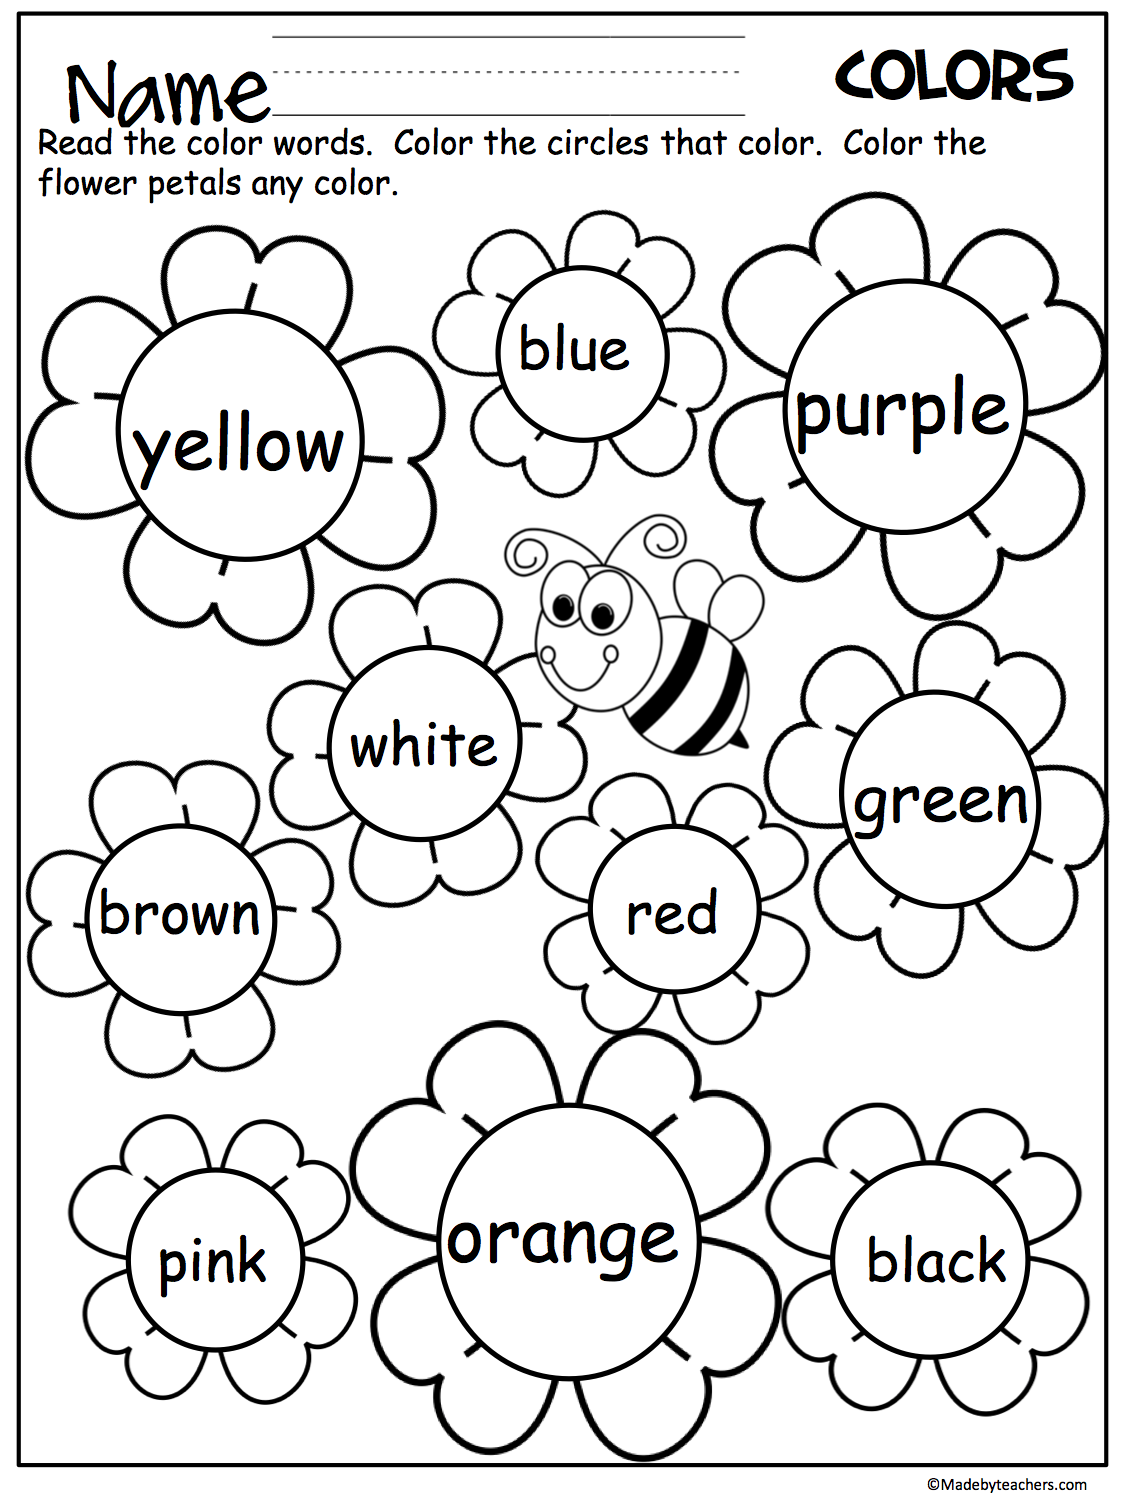 flower color words worksheet daycare kindergarten worksheets kindergarten preschool colors. Black Bedroom Furniture Sets. Home Design Ideas